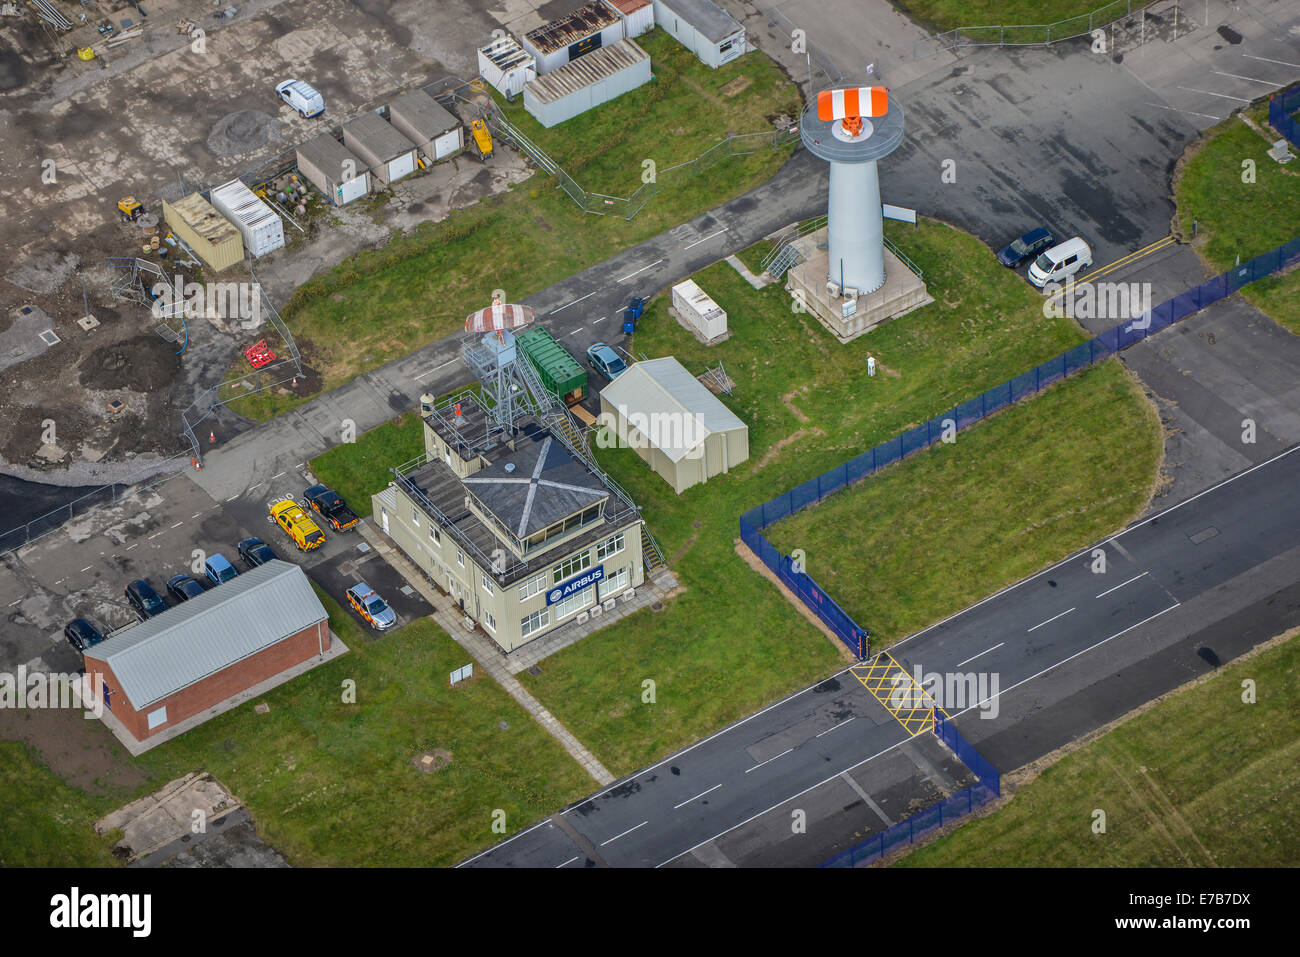 An aerial view showing a close up of the control tower at Hawarden Airport, home of the Airbus factory. Cheshire - Stock Image